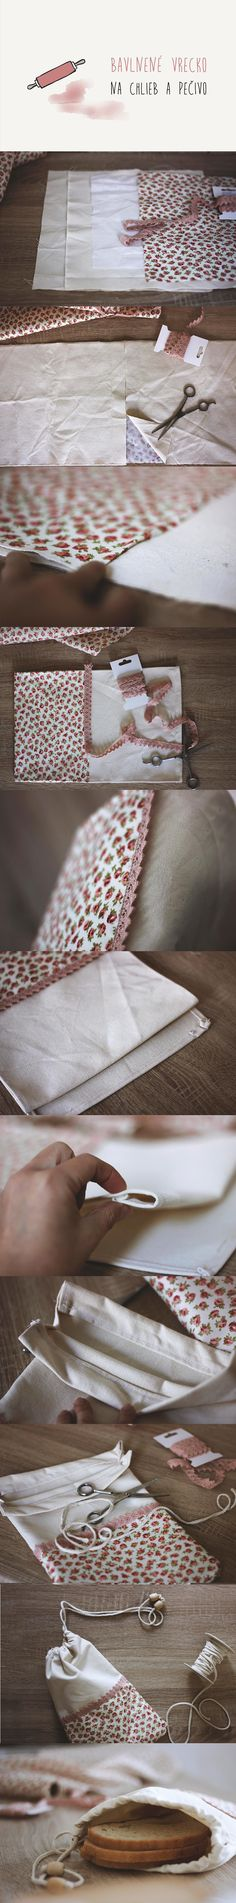 pocket / bread / diy / sew / diyproject / lace